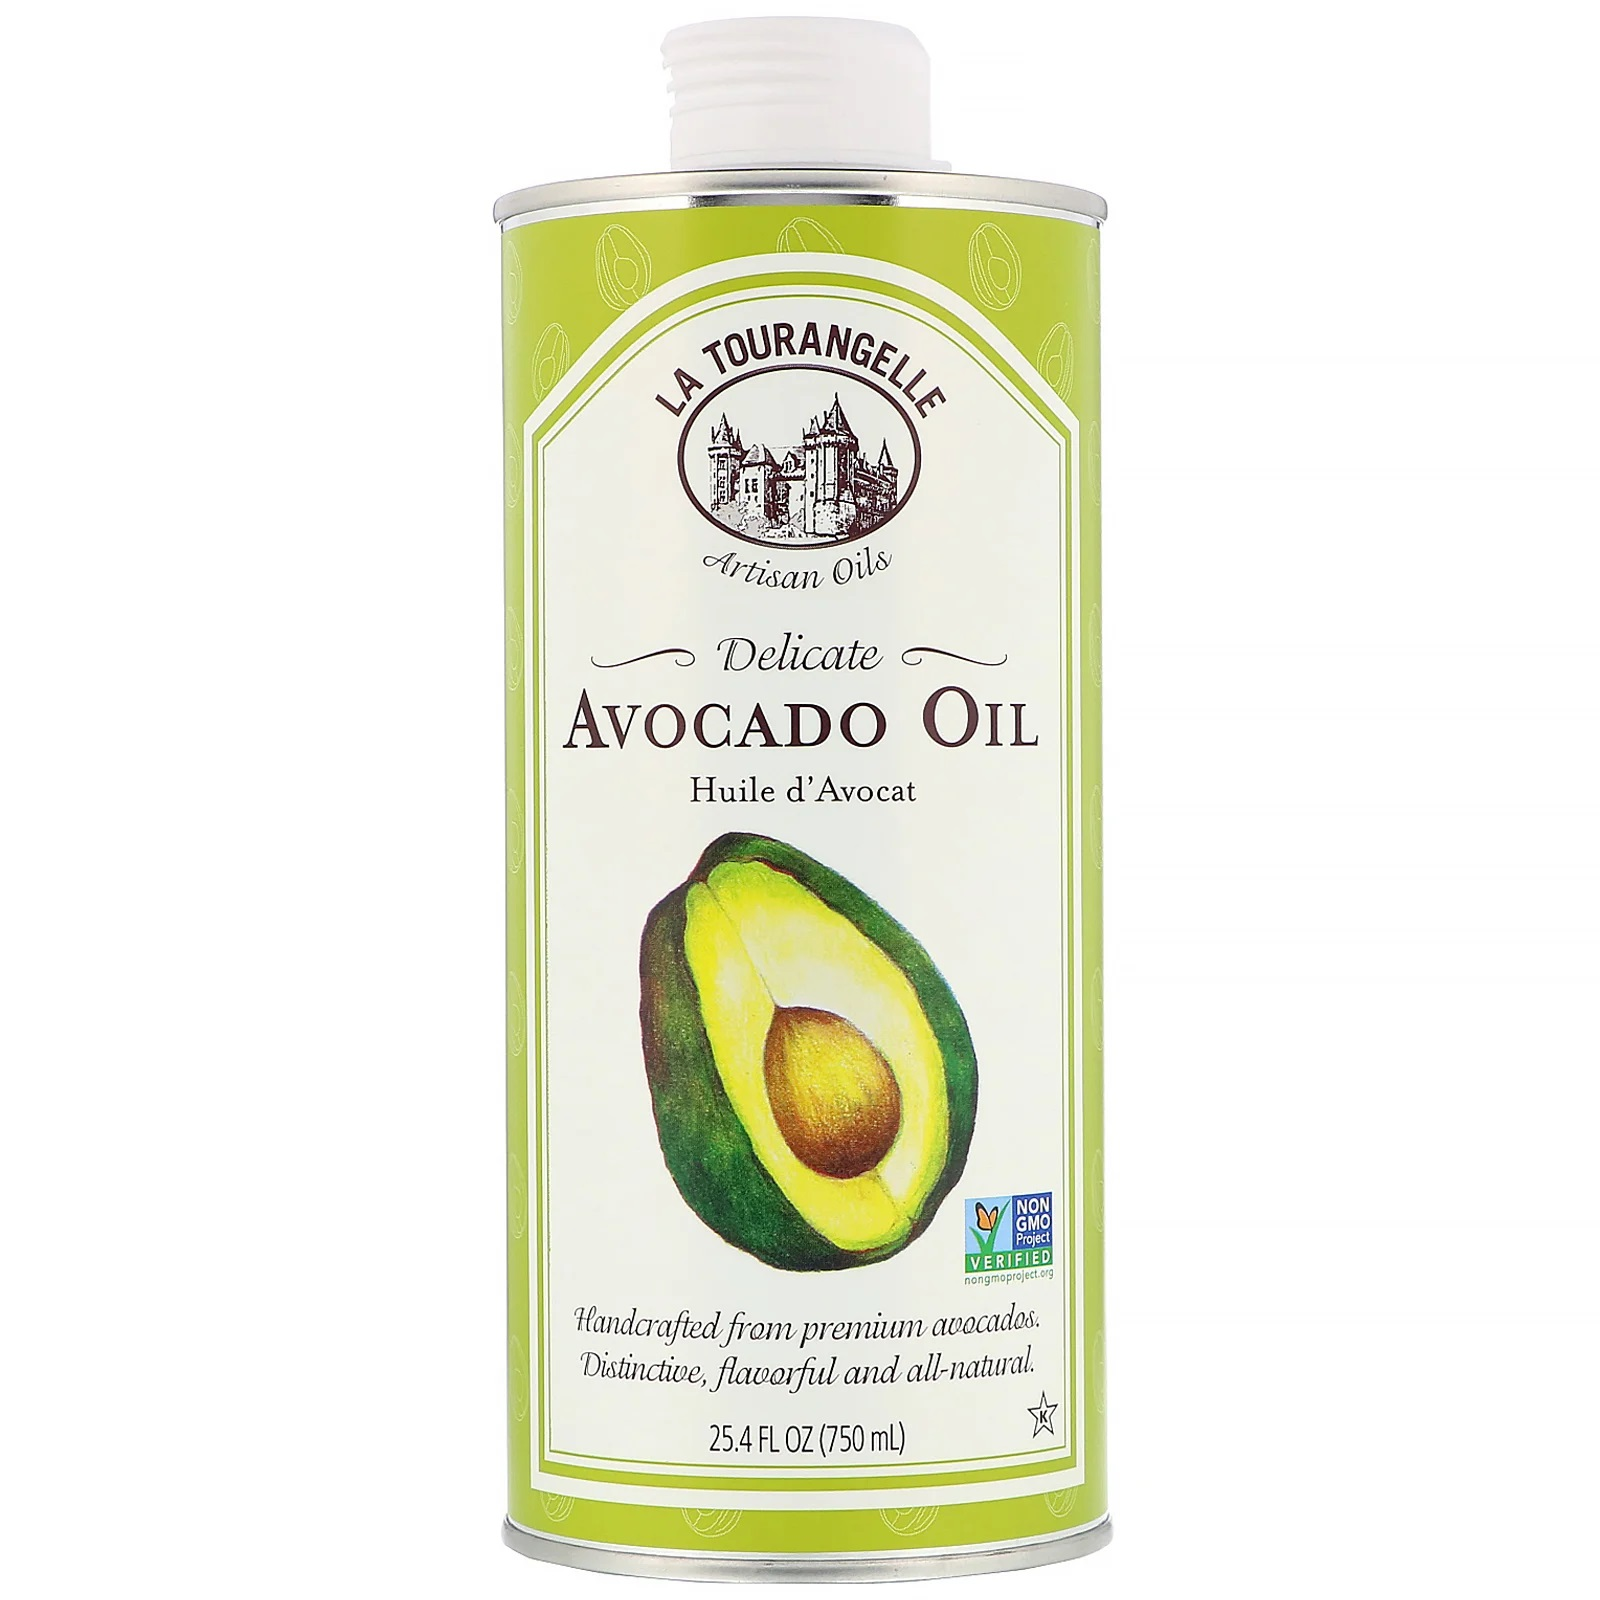 La Tourangelle, Delicate Avocado Oil, 25.4 fl oz (750 ml) 2 PACK